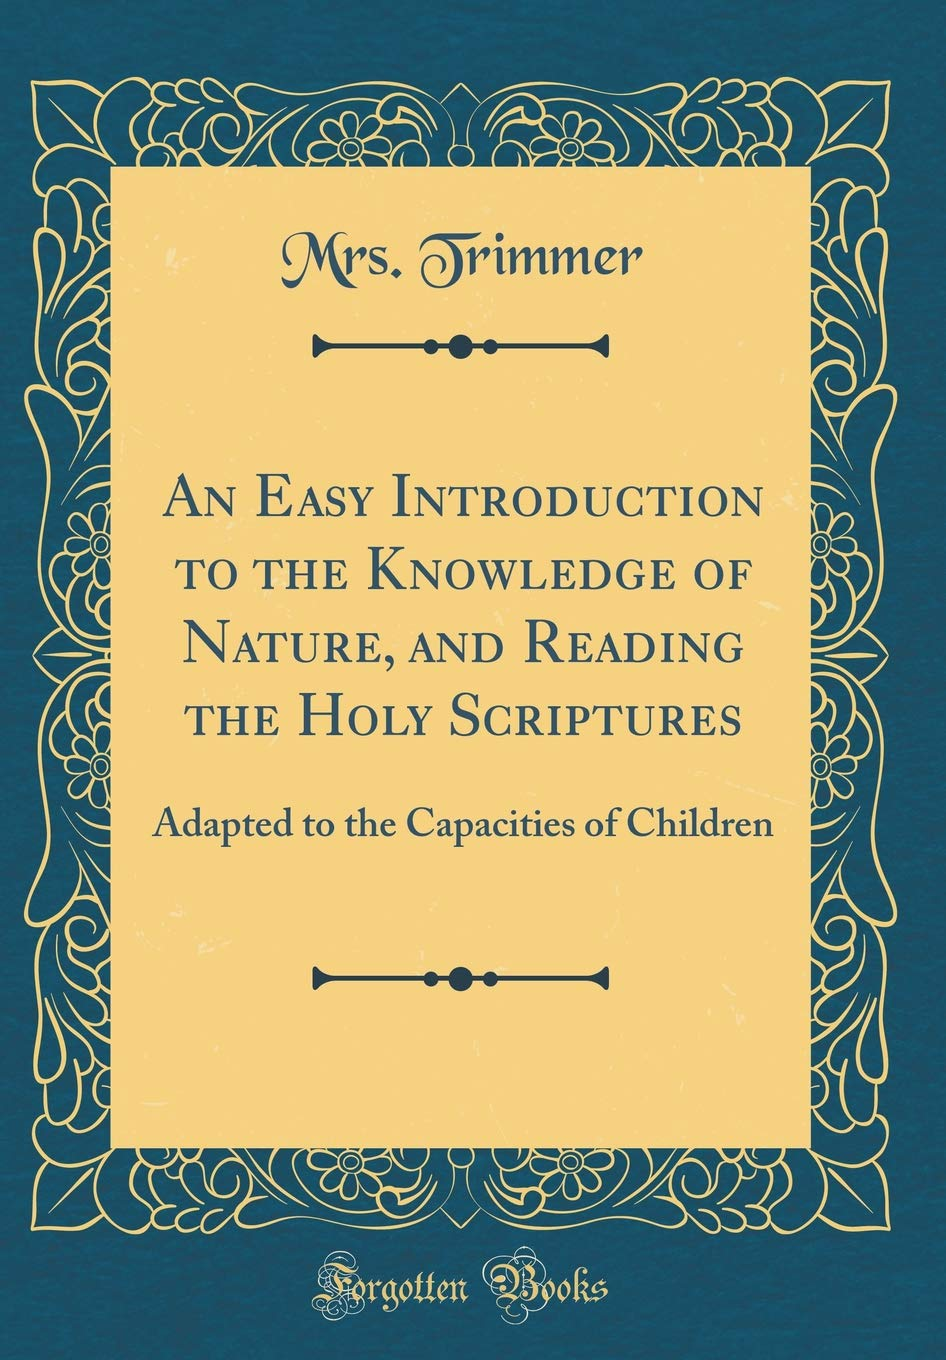 An Easy Introduction to the Knowledge of Nature, and Reading the Holy Scriptures: Adapted to the Capacities of Children (Classic Reprint) PDF